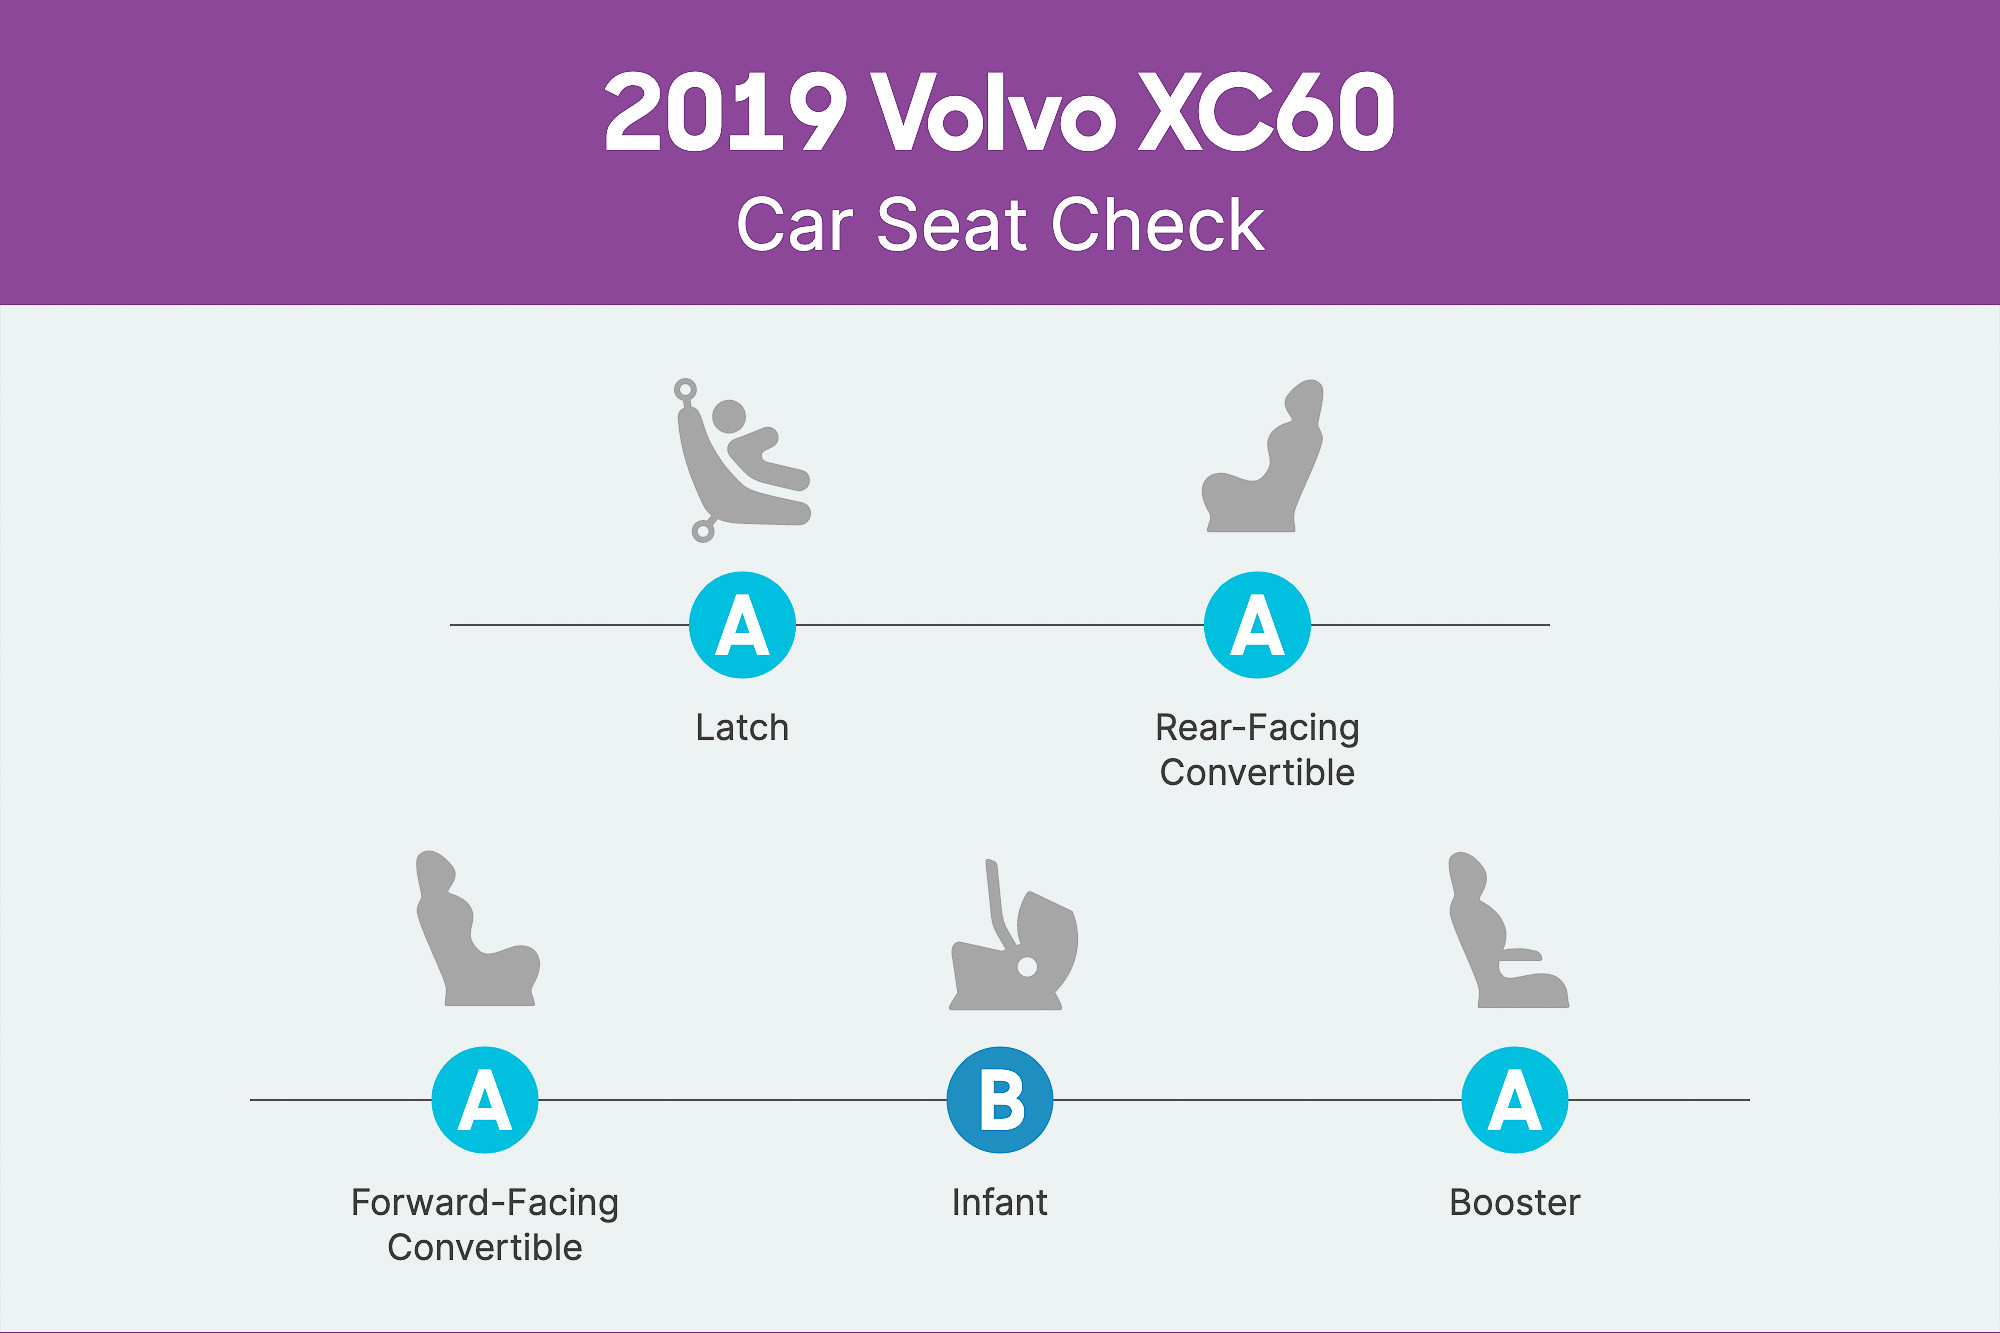 How Do Car Seats Fit in a 2019 Volvo XC60?